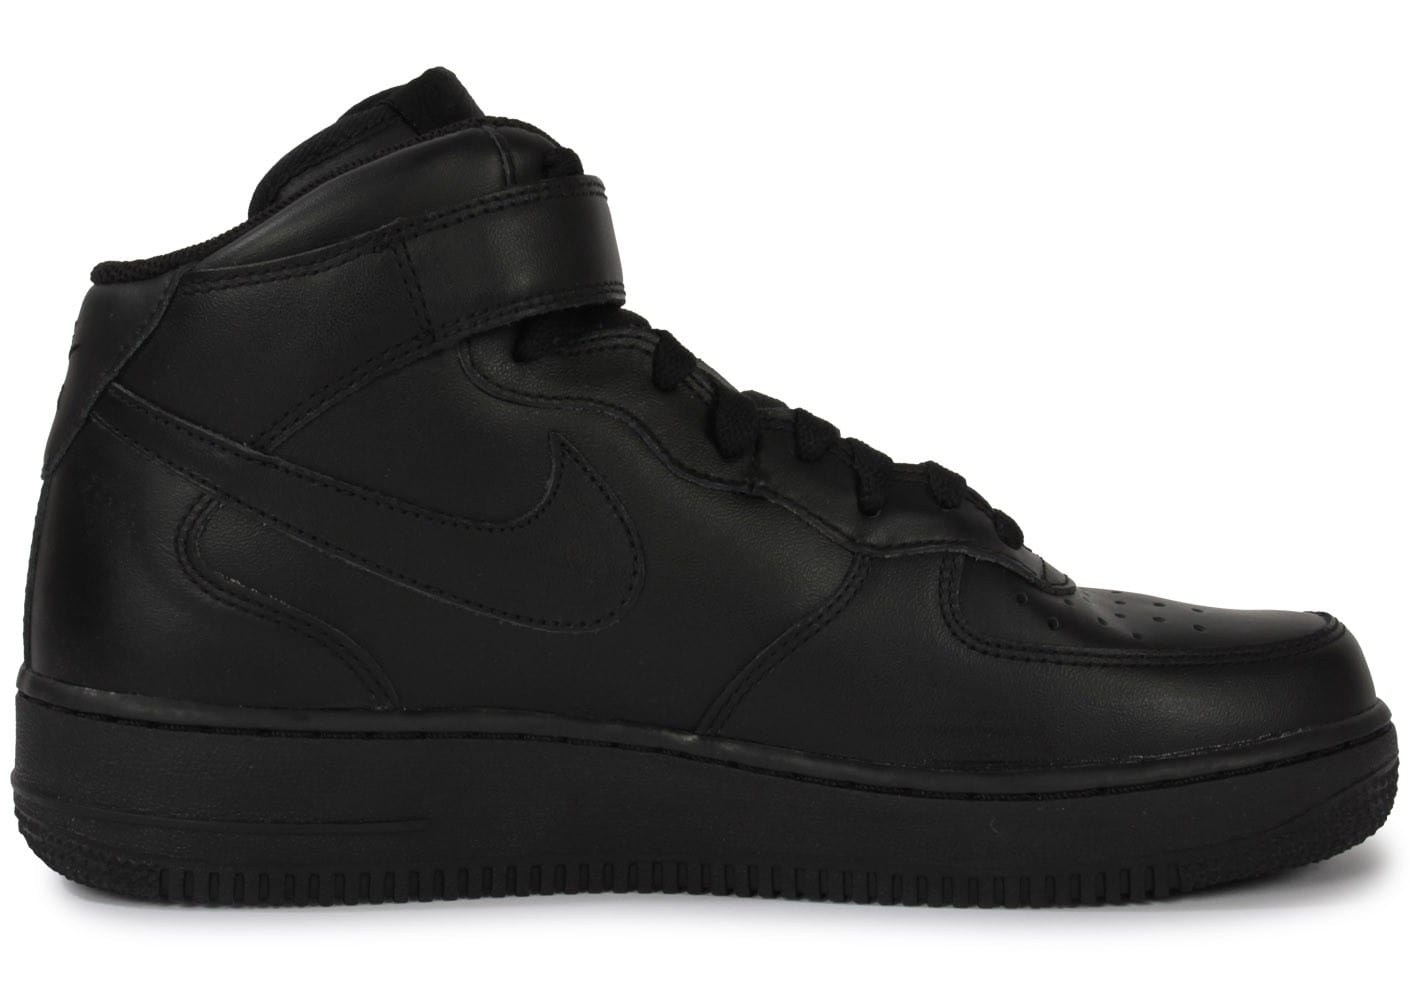 grossiste 51519 de5be Nike Air Force 1 Mid 07 Noire - Chaussures Baskets homme ...